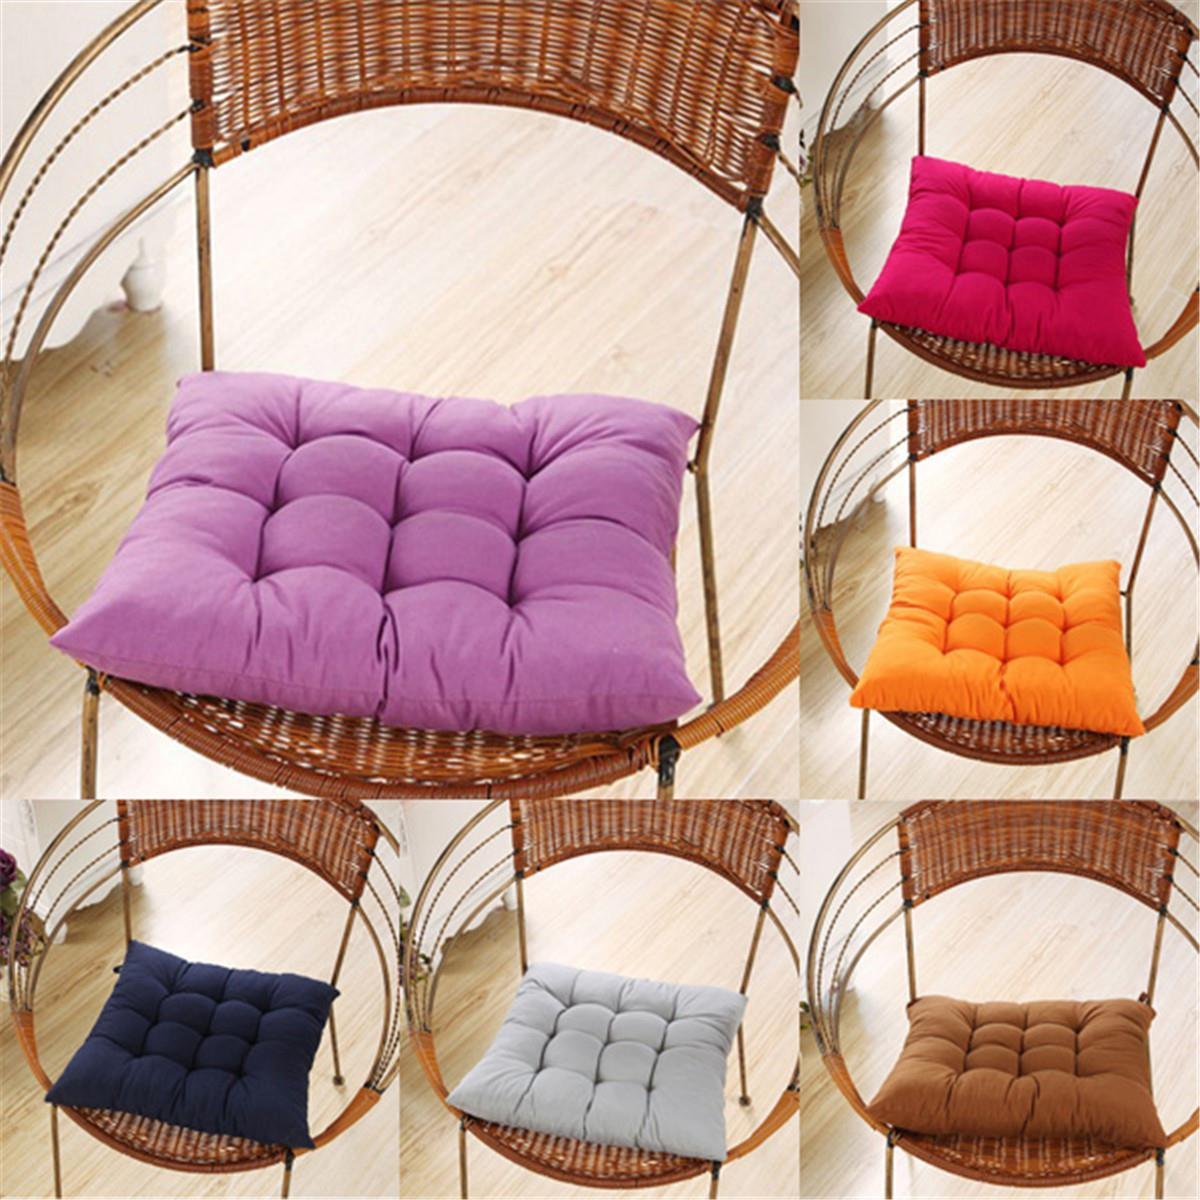 Candy Colors Garden Patio Seat Cushion Chair Pads Tie On Pad Buttock Mat Household Bedroom Office Decorative Crafts Accessories